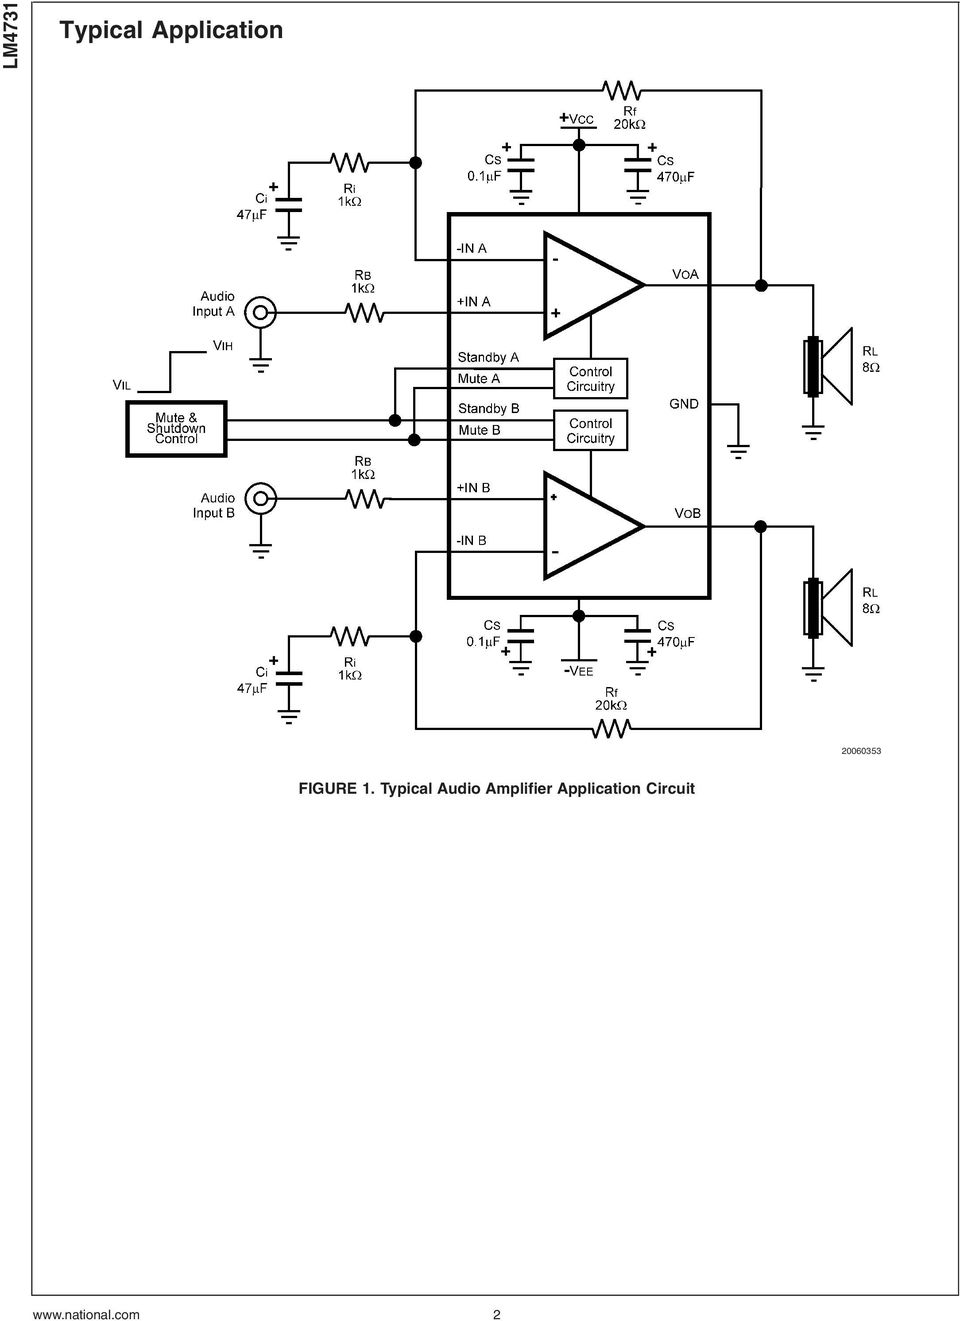 Lm4731 Stereo 25w Audio Power Amplifier With Mute And Standby Modes Mosfet Circuit Typical